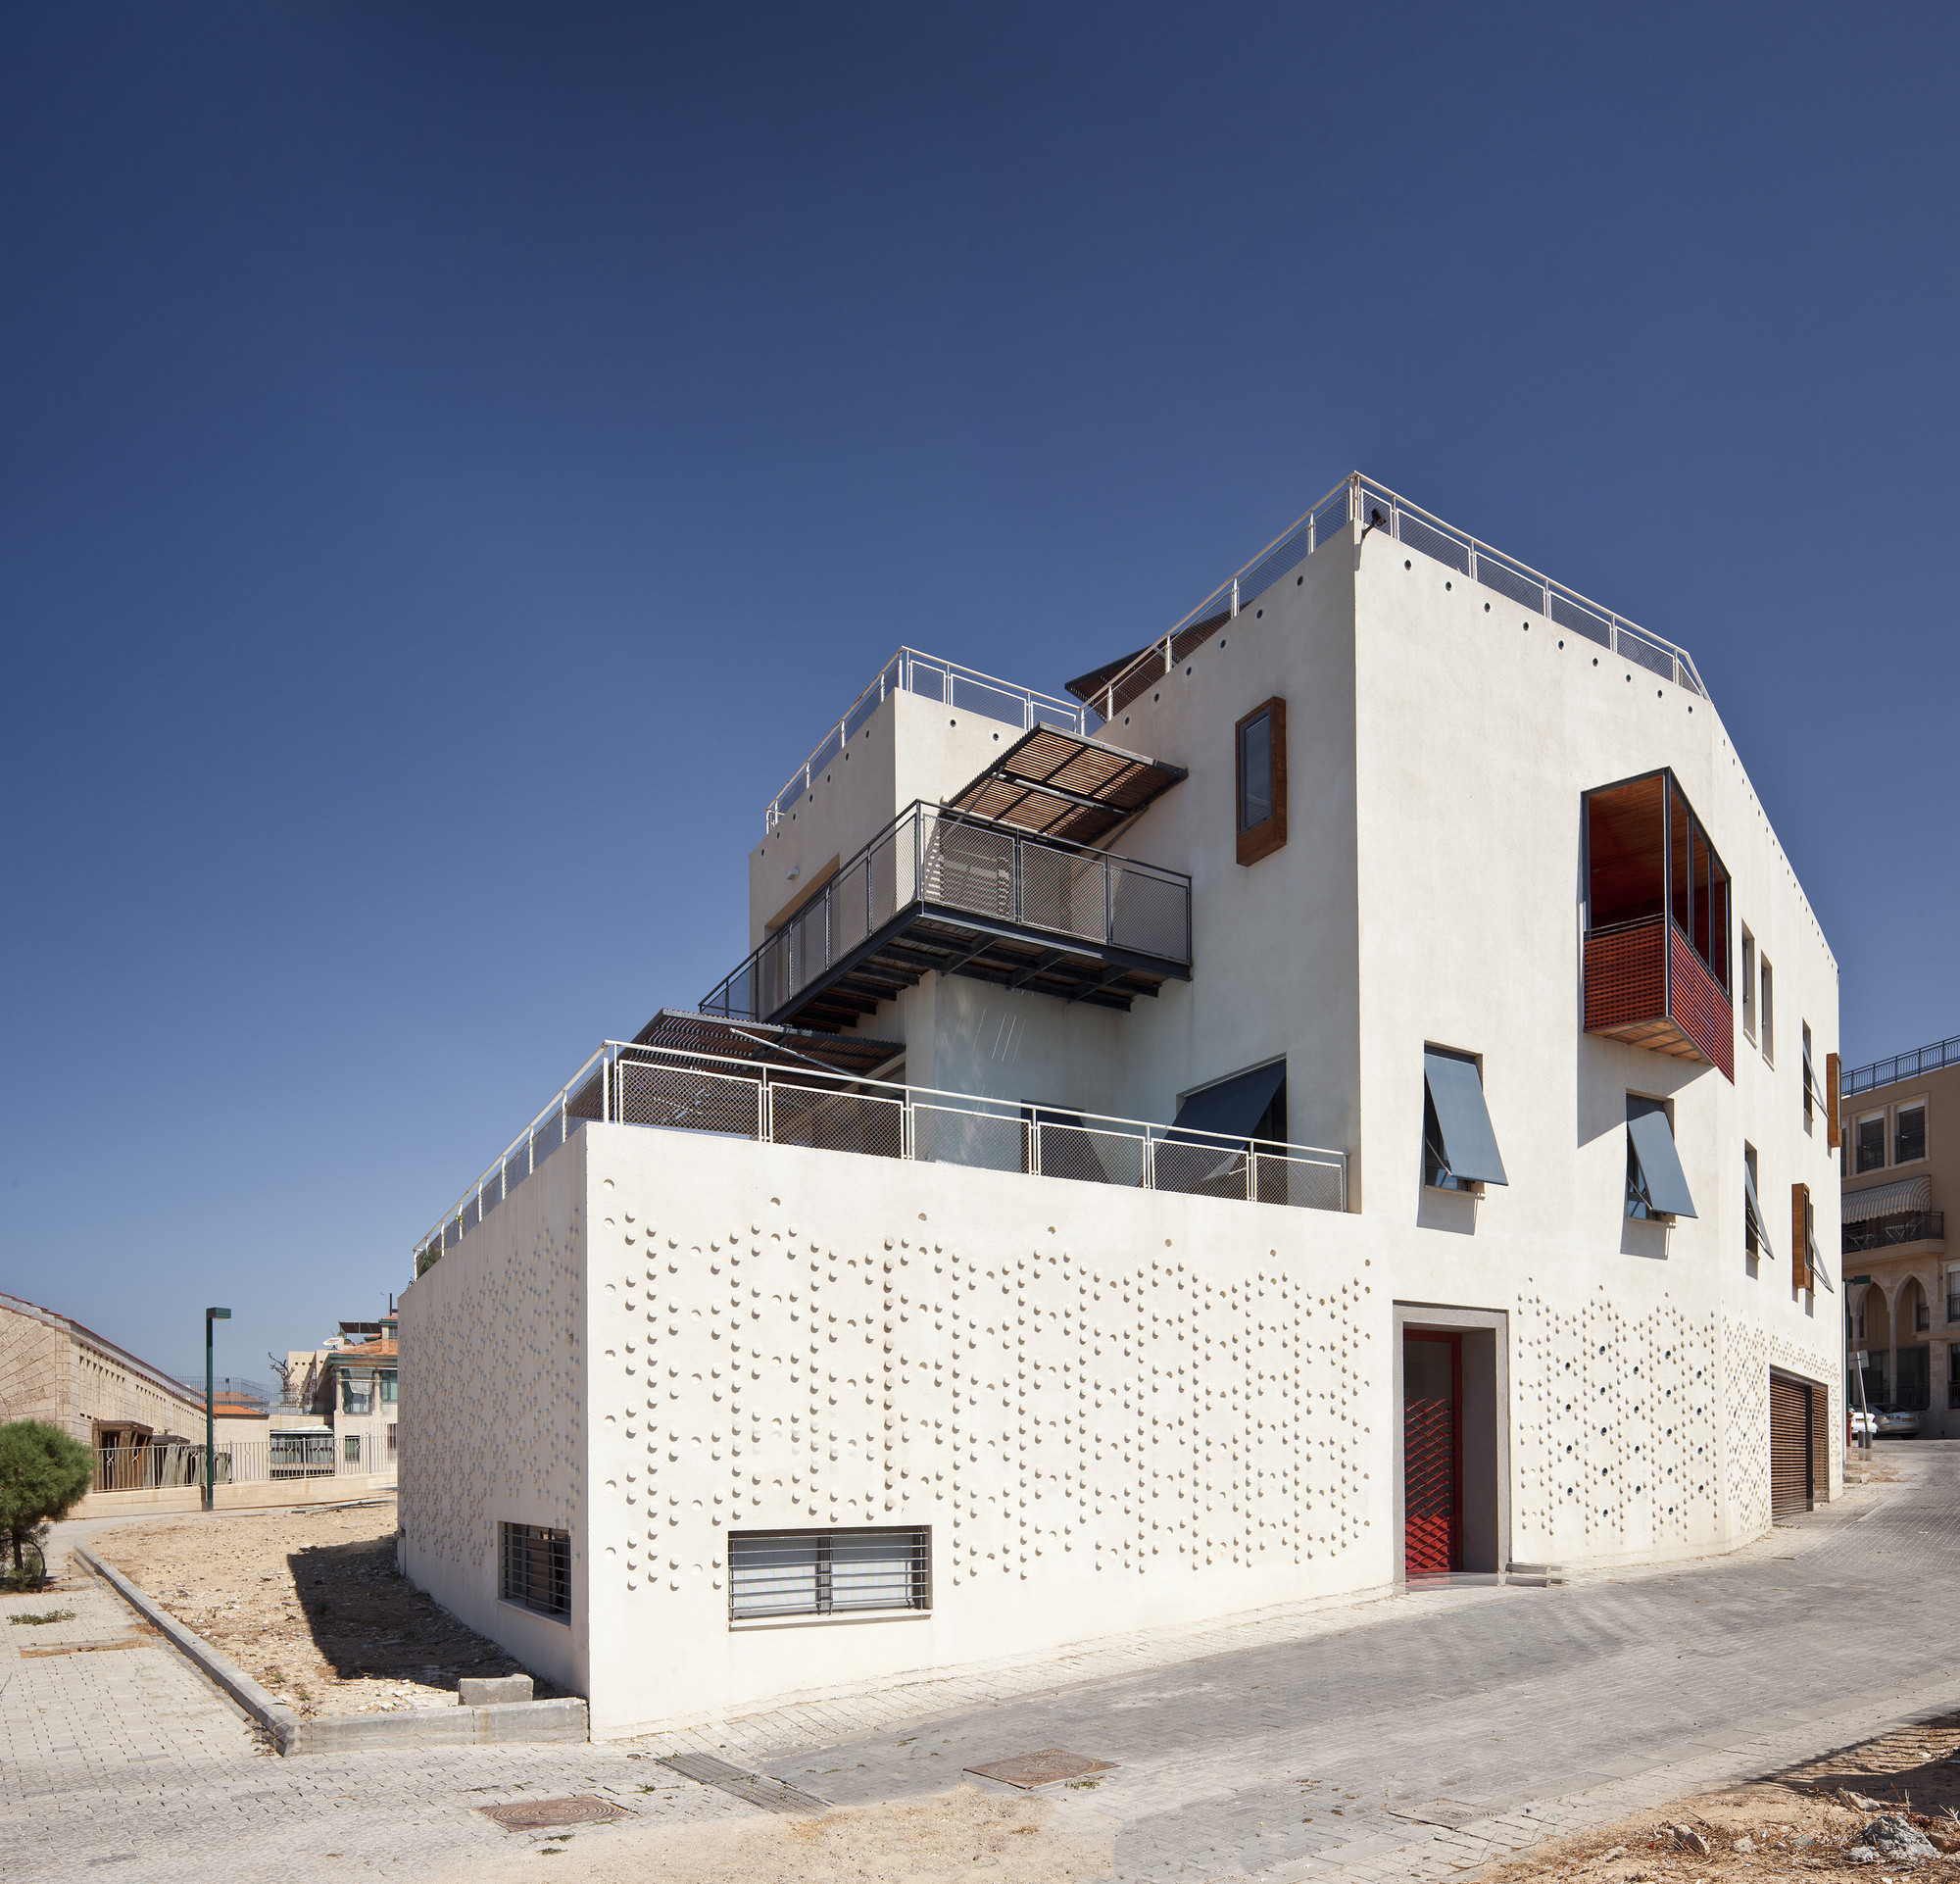 Housing in Jaffa / GalPeleg Architects, © Amit Geron